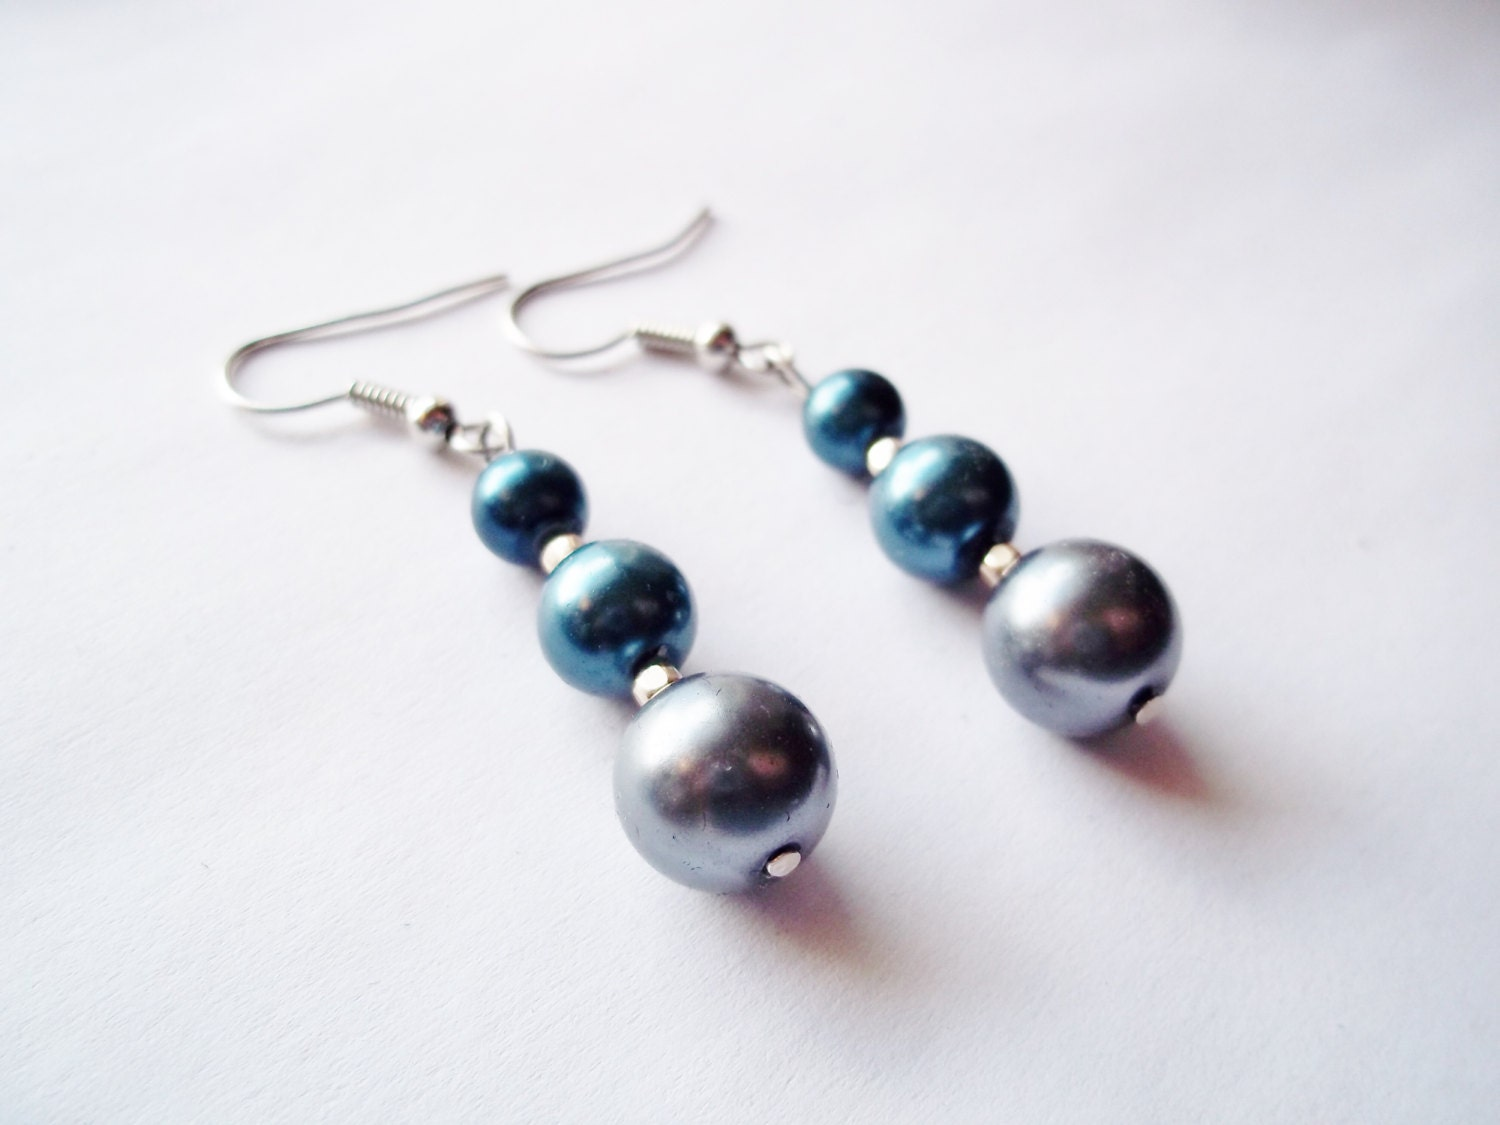 Blue earrings gray earrings pearl earrings blue and gray dangle earrings beaded earrings beaded jewelry womens jewelry valentines day gift - ImaginationbyEm